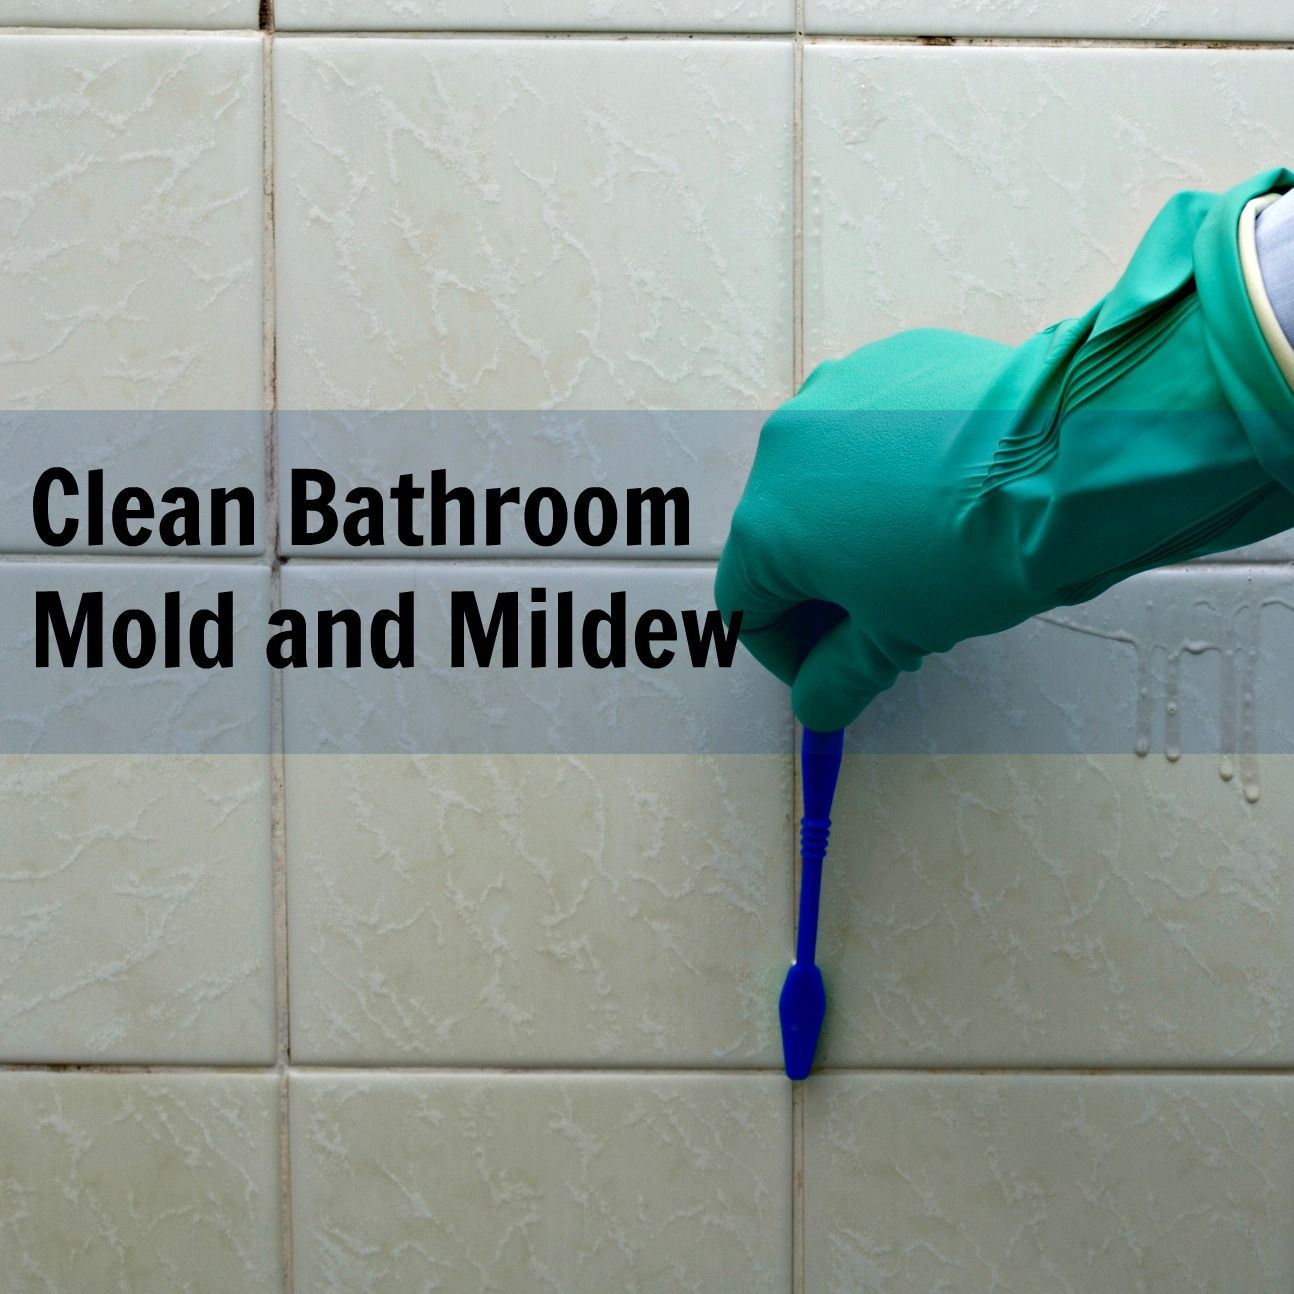 Cleaning Tips For Removing Mold And Mildew From Shower Walls Tile Grout Ceilings Shower